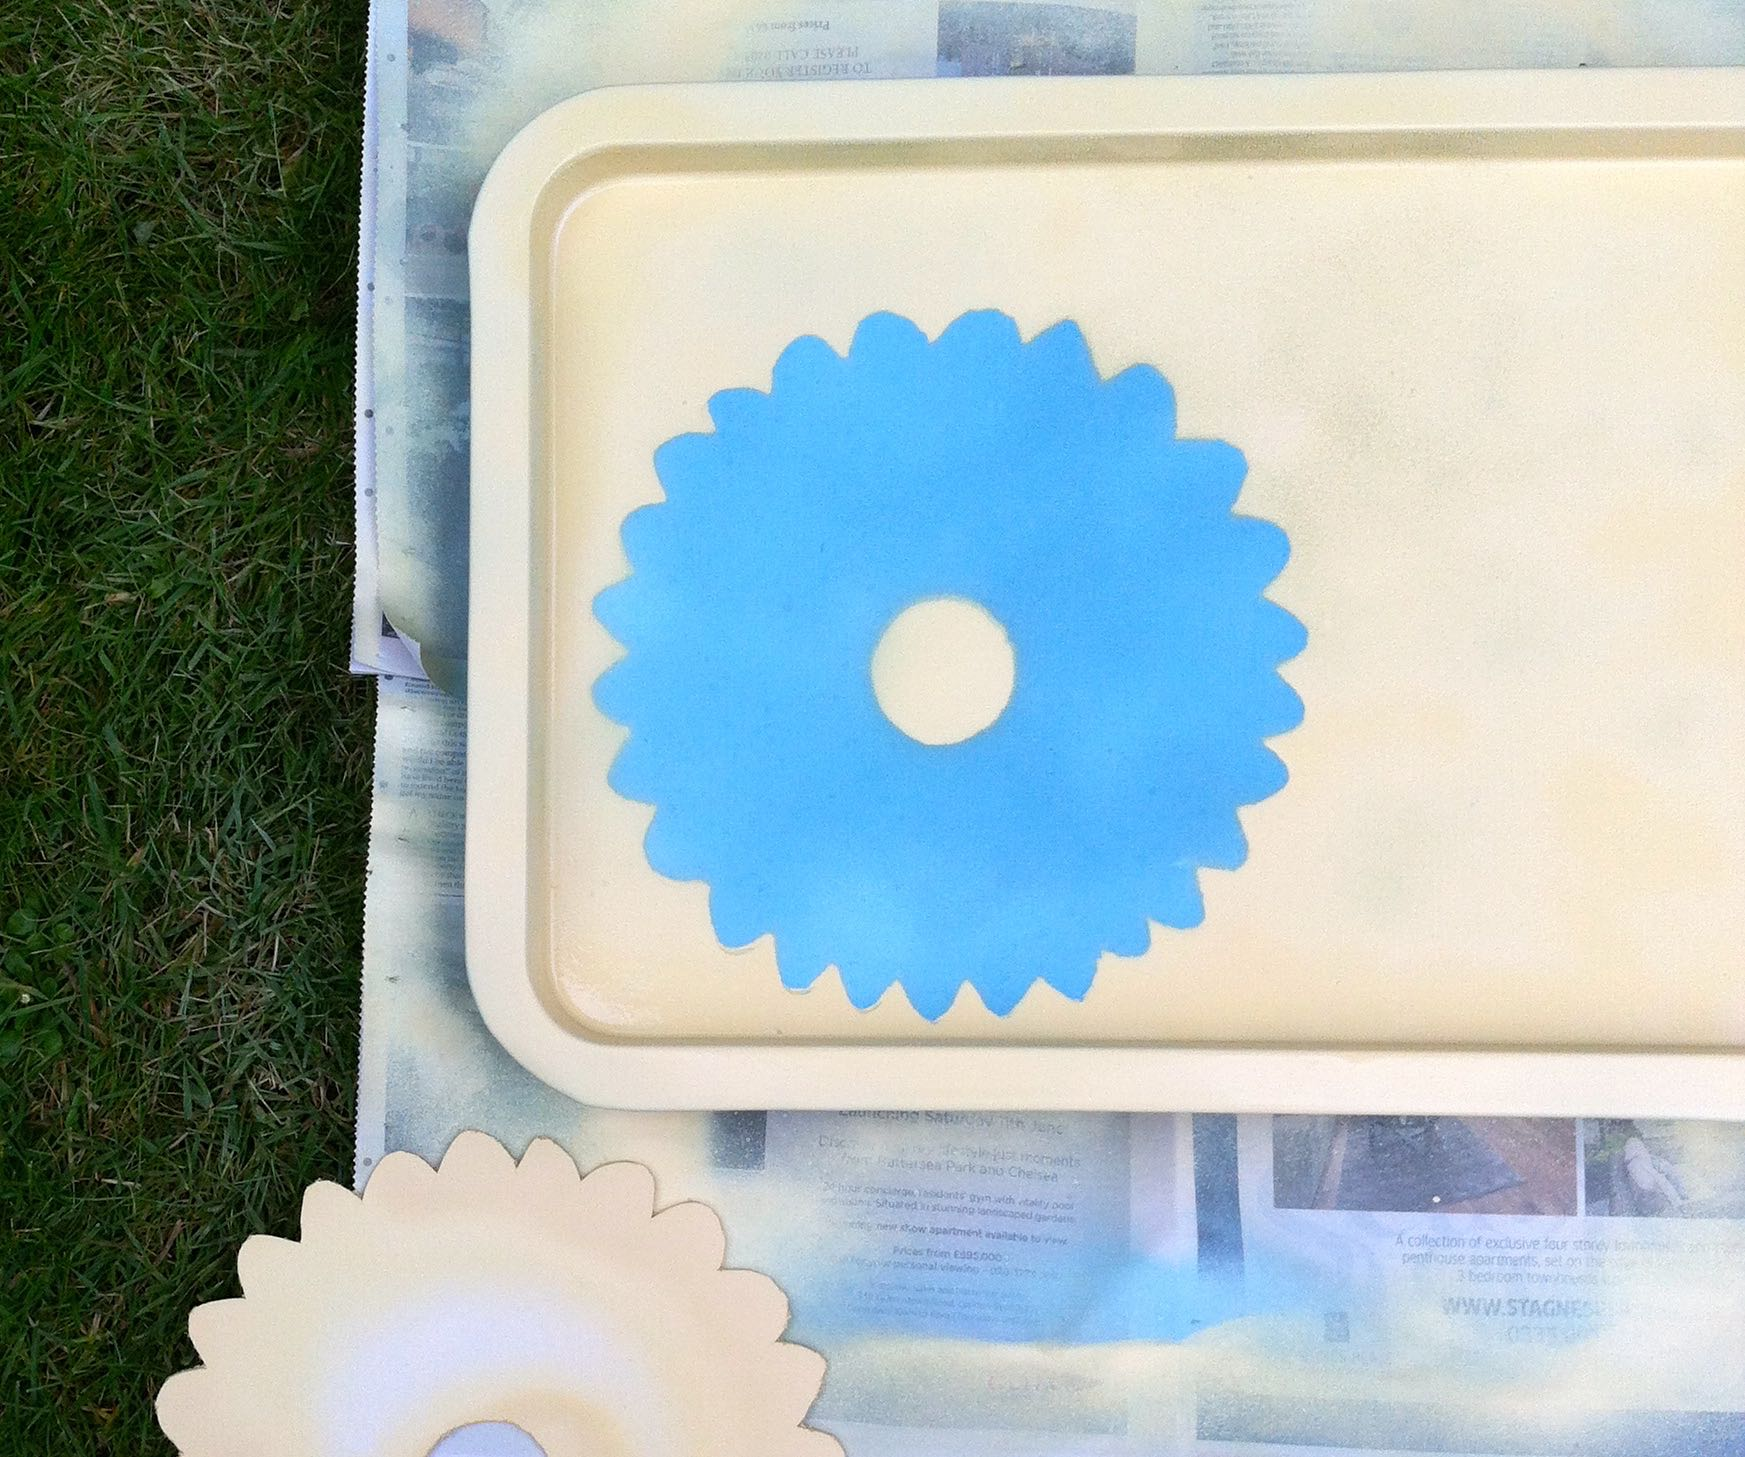 Removing the template to reveal the blue flower shape